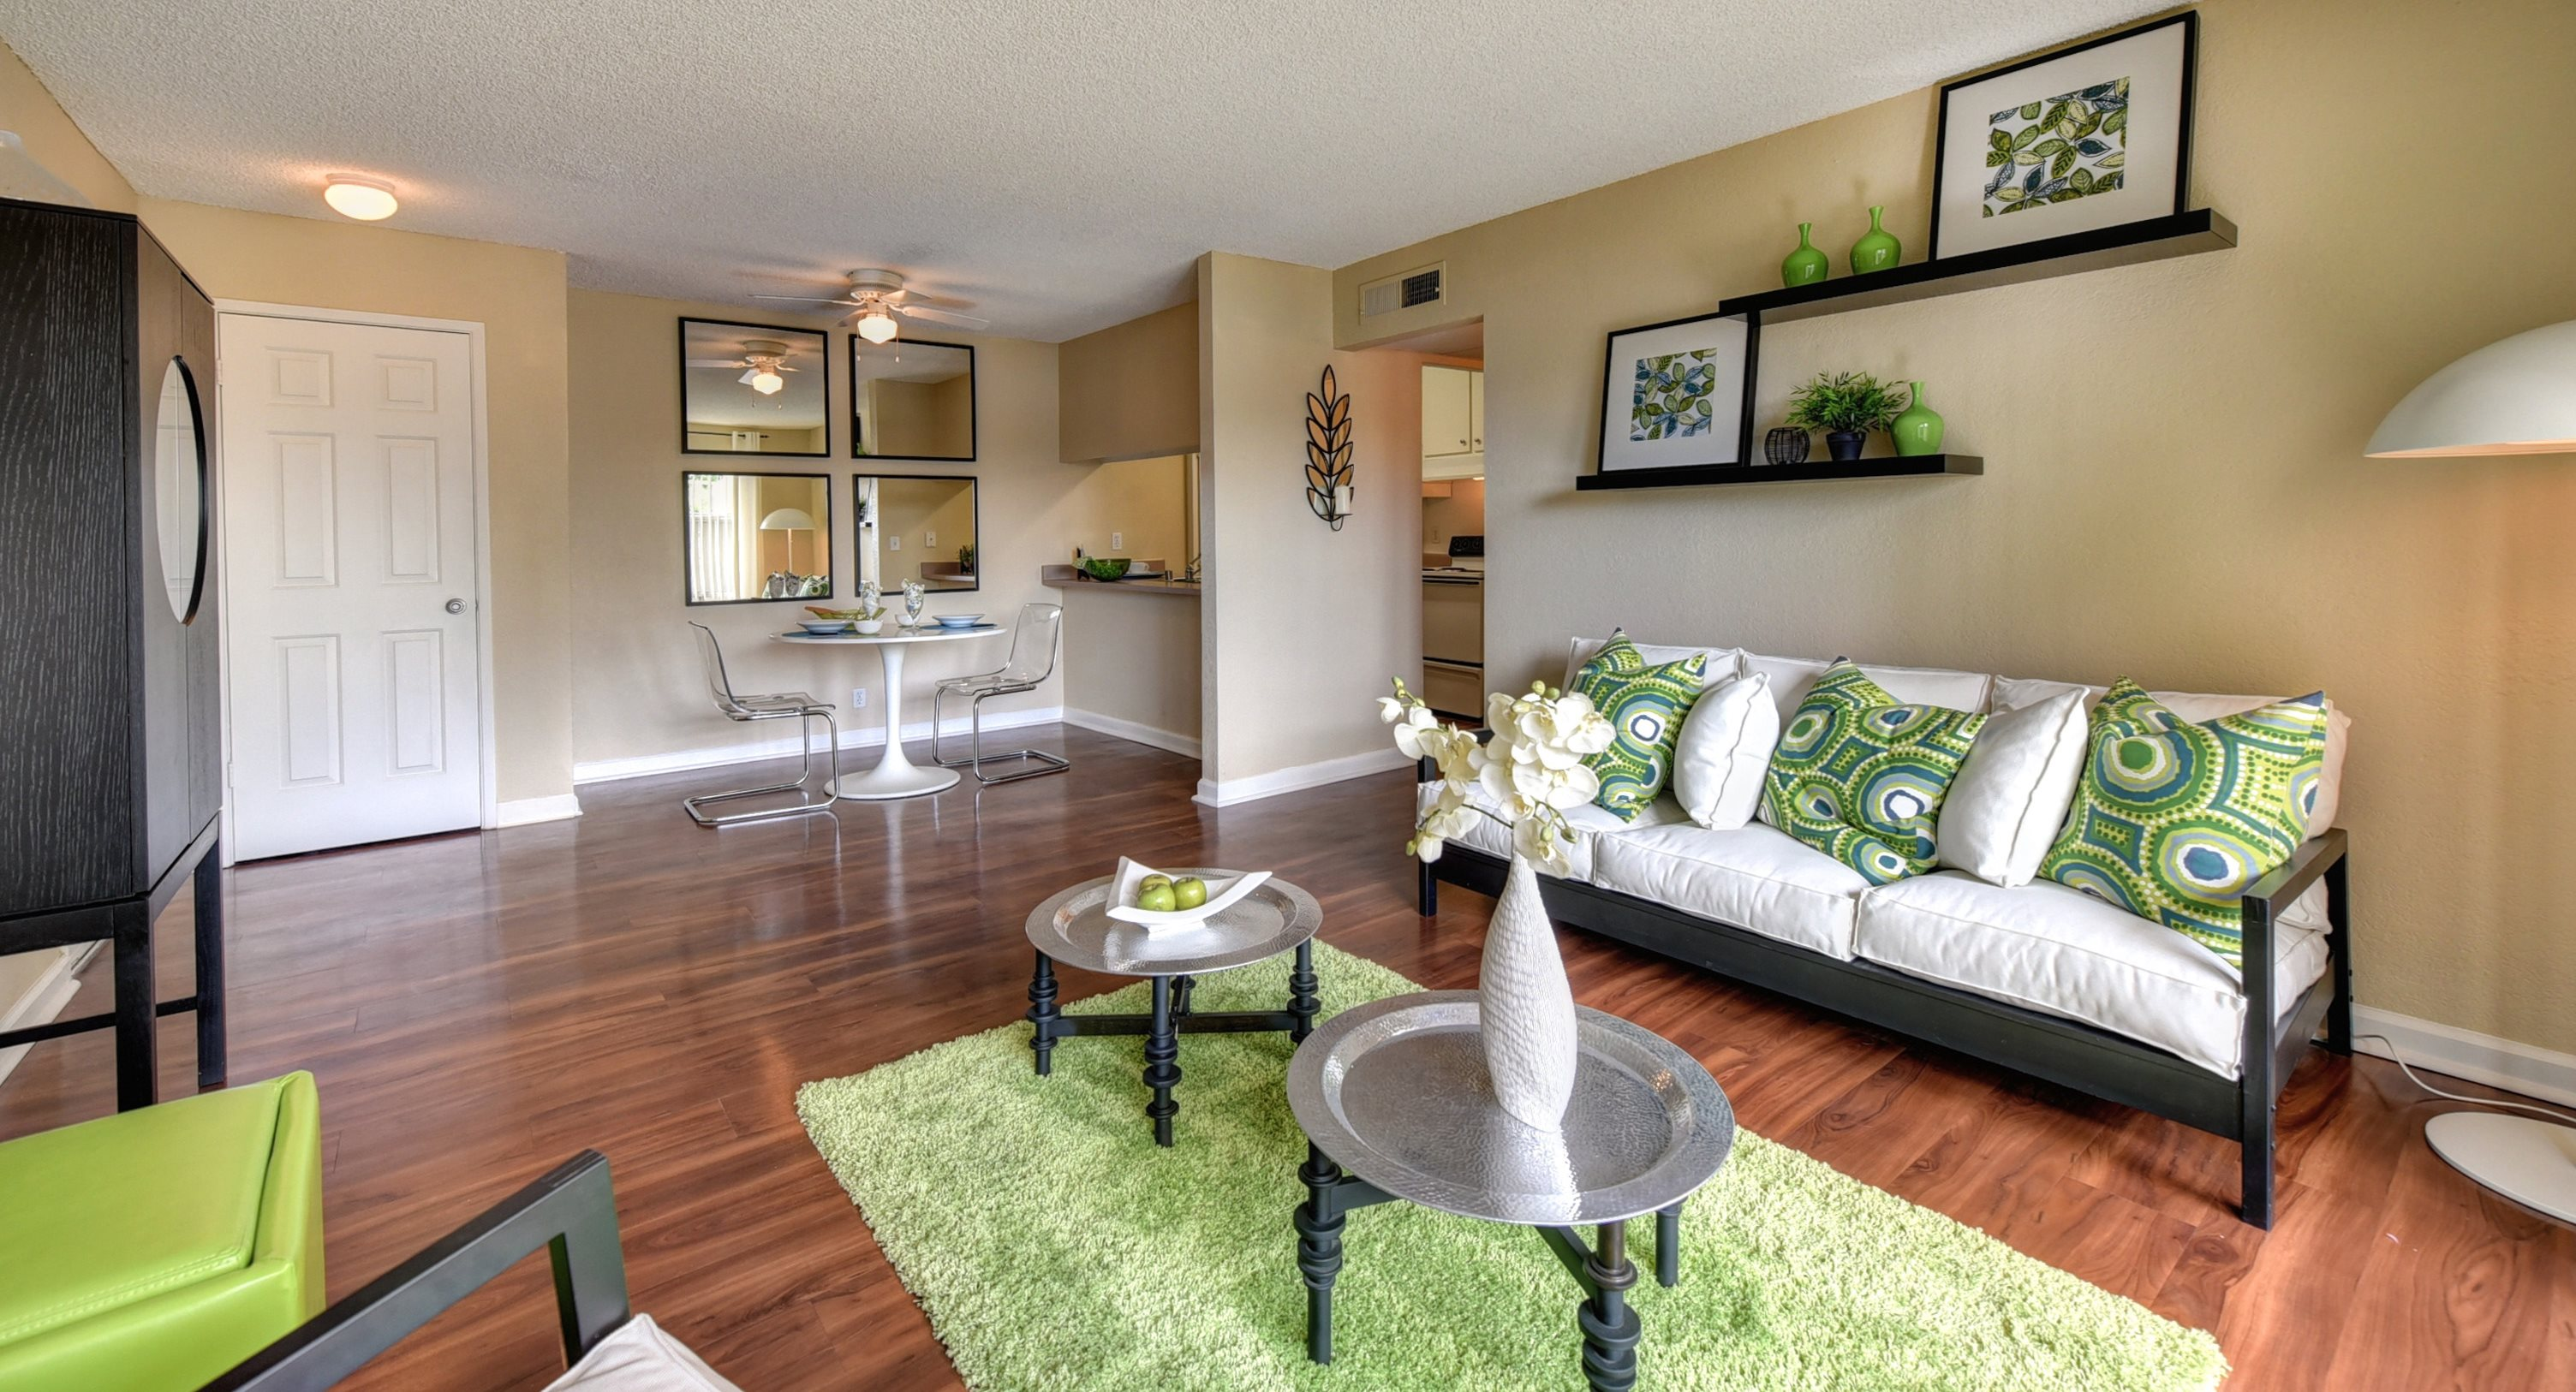 Living Room with White Sofa, Green Pillows, Hardwood Inspired Floor, with Green Carpet